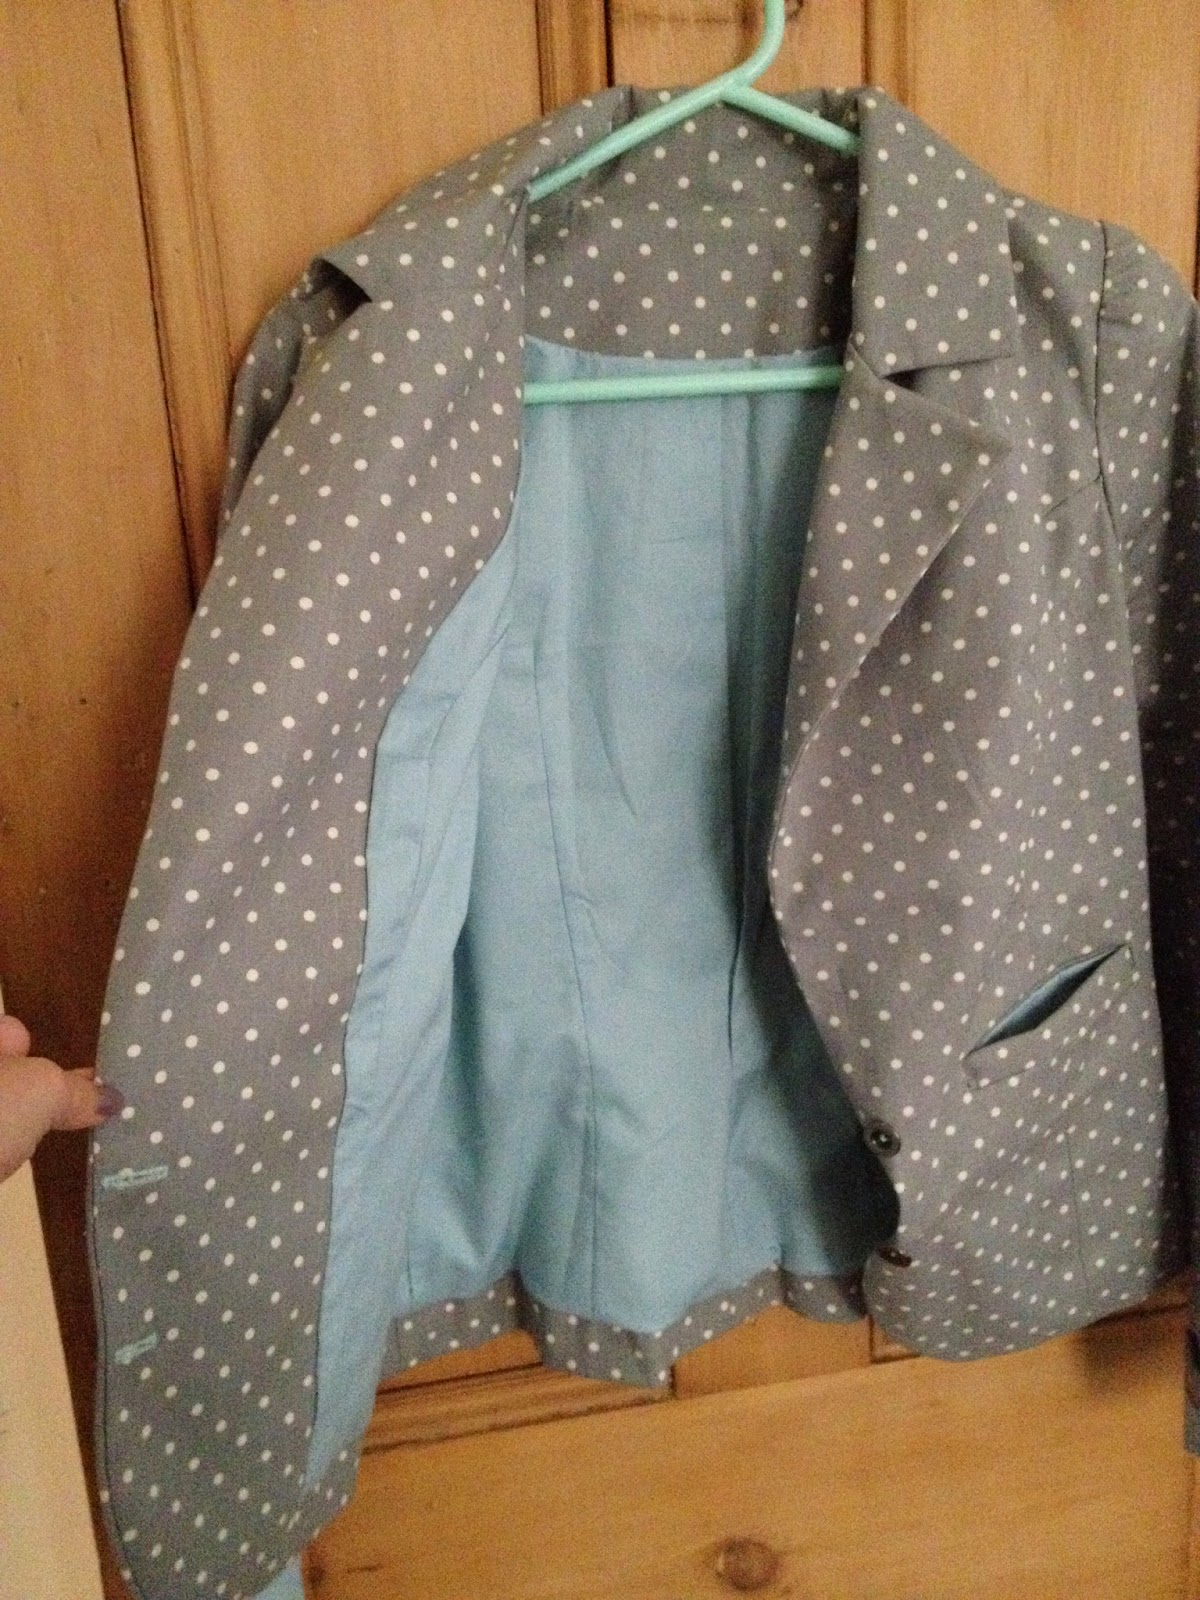 Diary of a Chain Stitcher: Polka Dot Chloe Jacket from Jolie Marie Louise